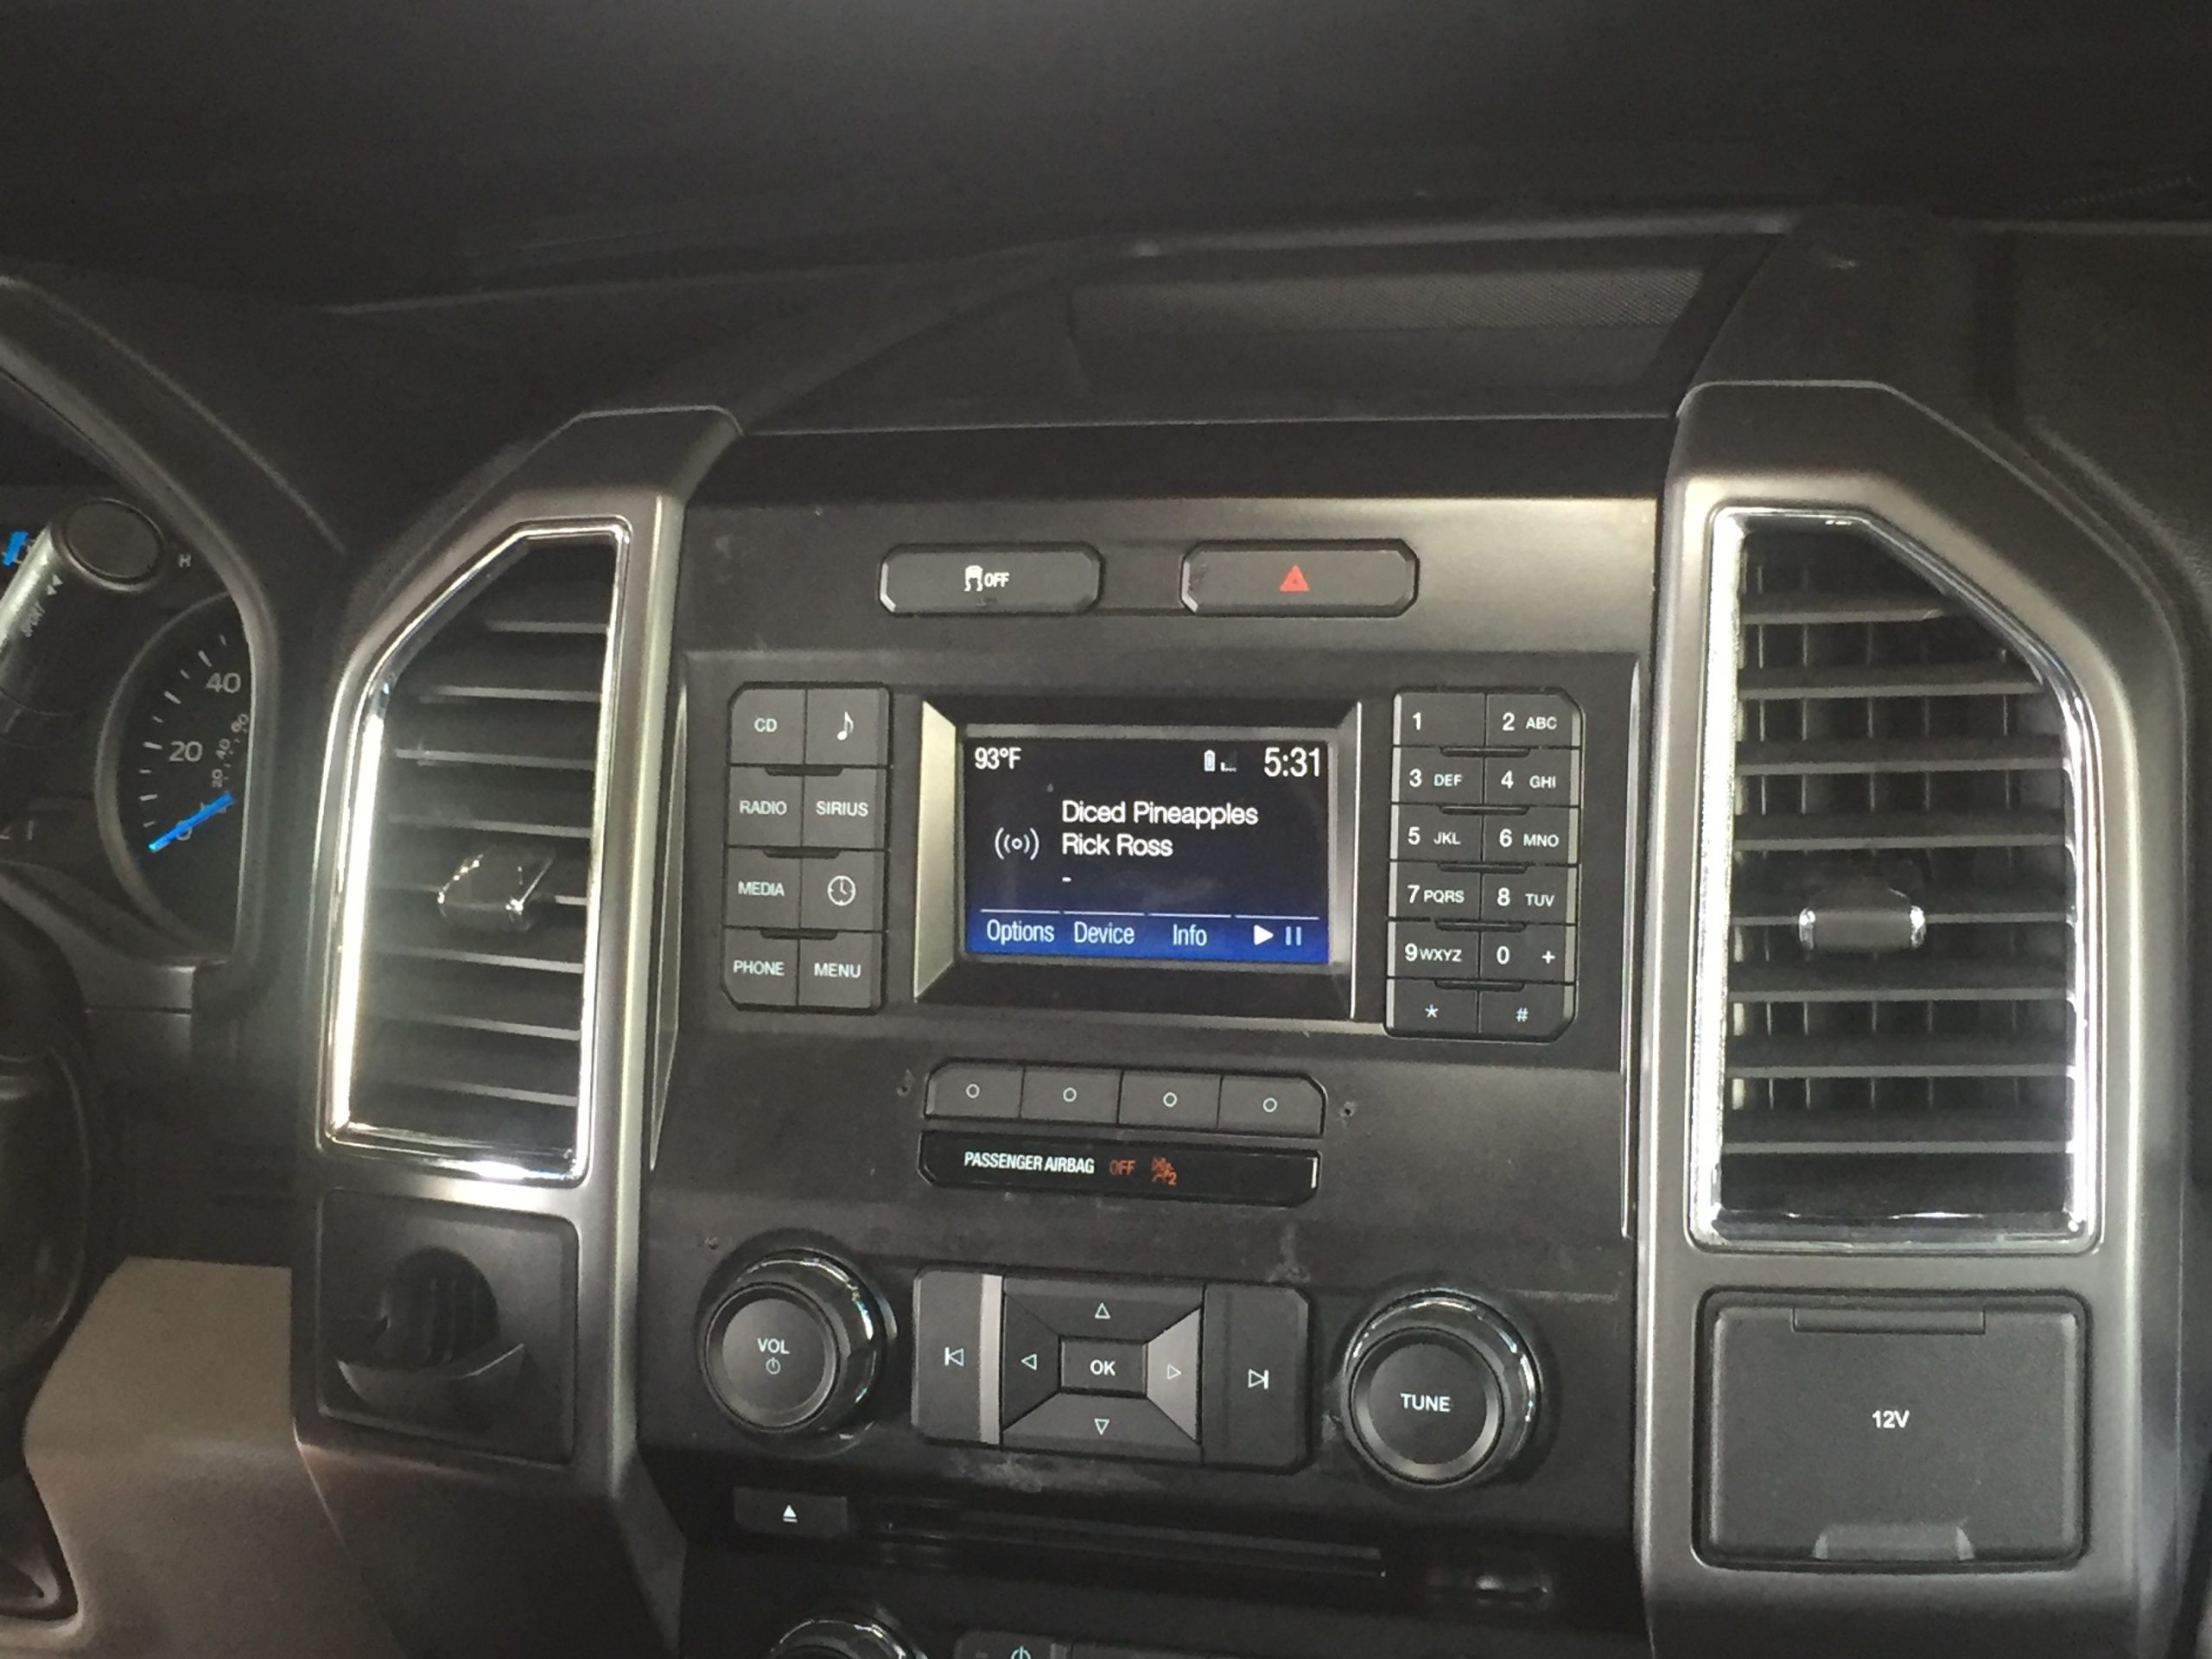 2015 F 150 For Sale >> 2015 2016 2017 Ford F150 iPad Mini Dash Kit - AudioDesigns CG Store